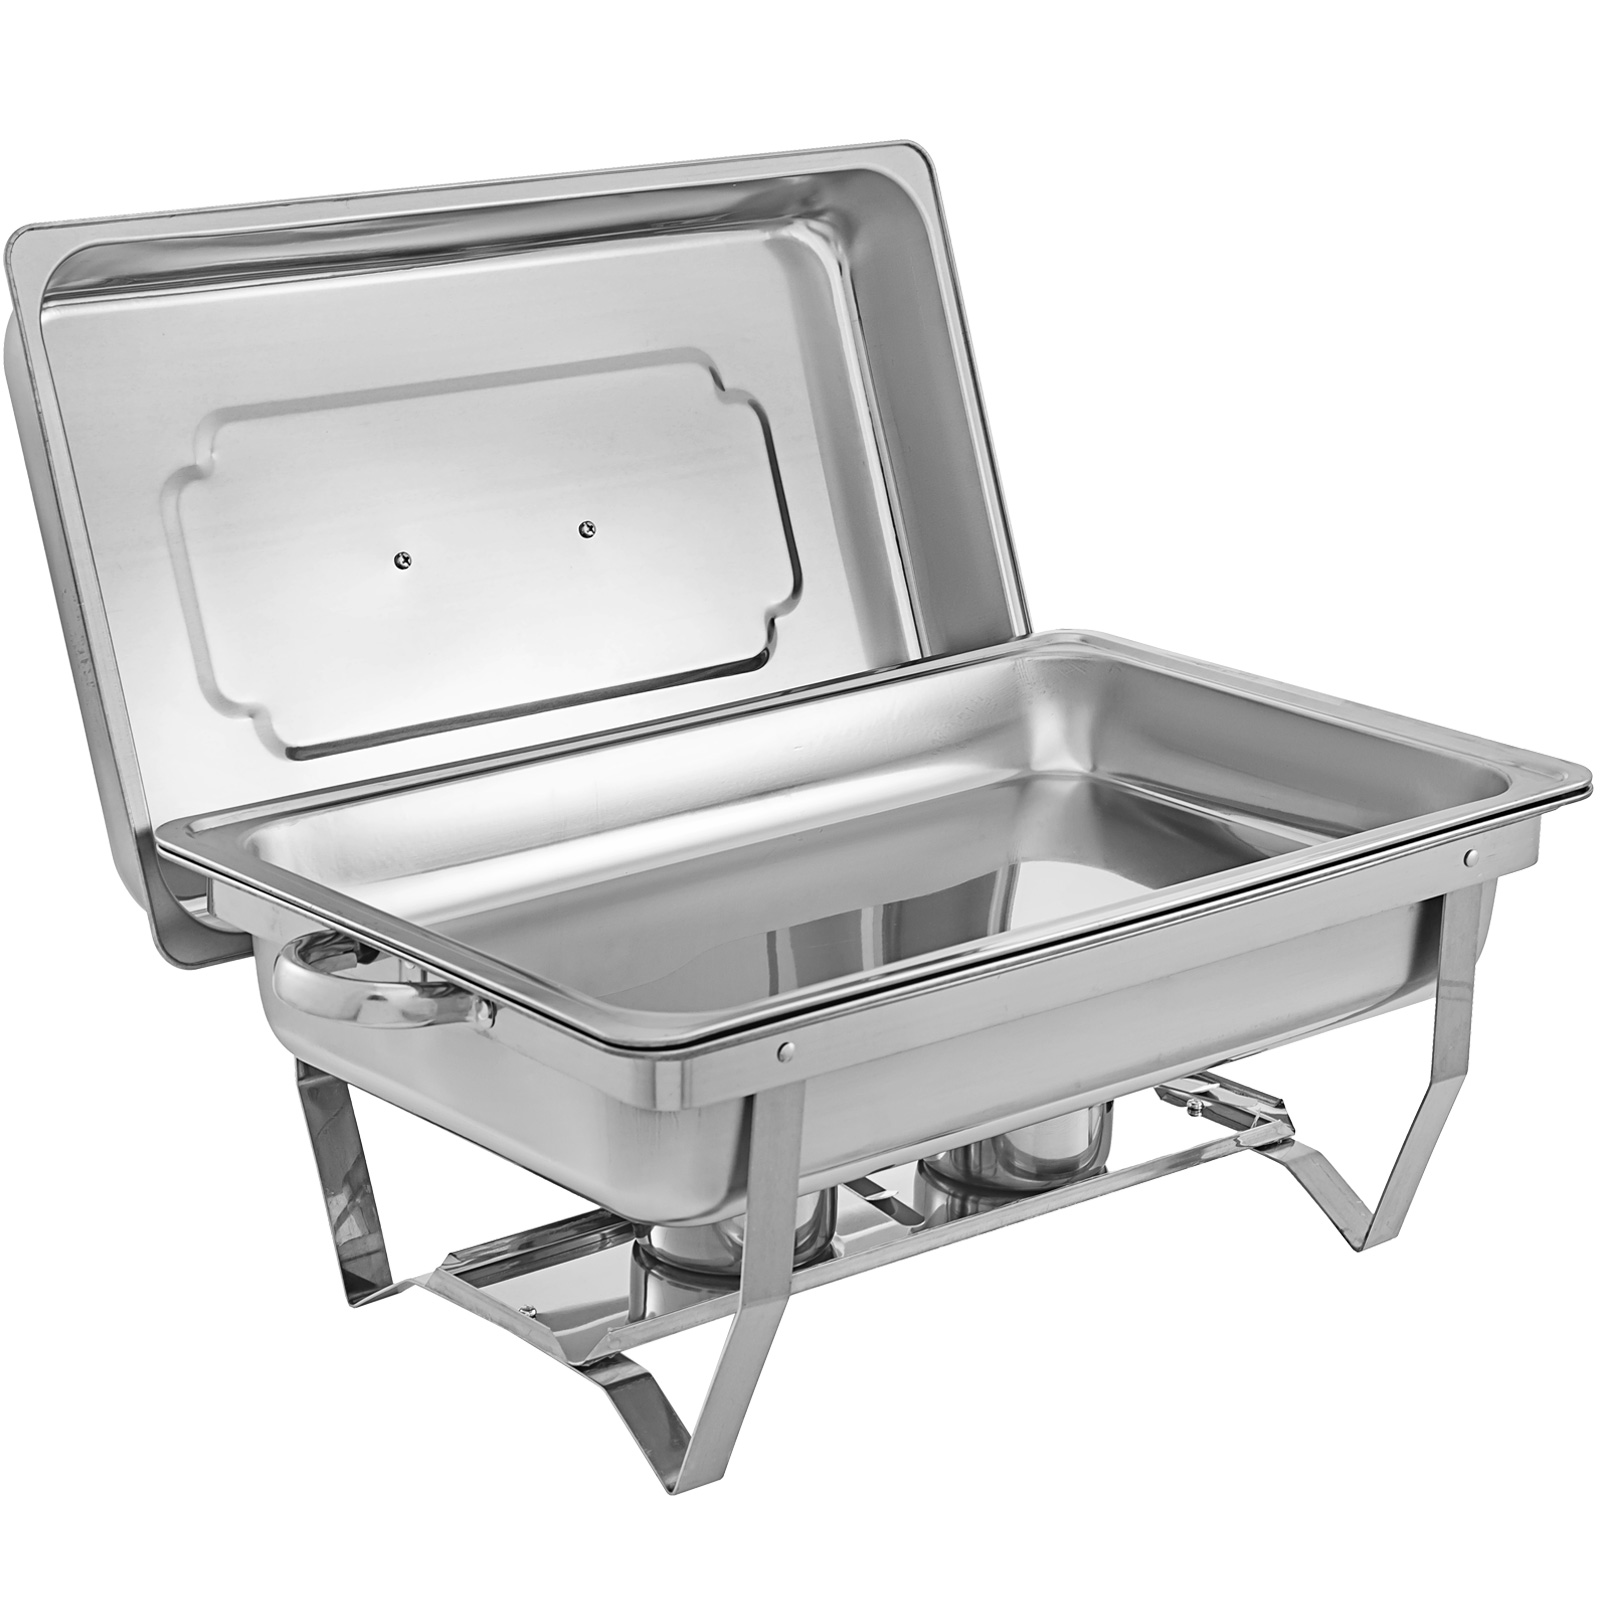 thumbnail 35 - Multi-Stainless-Steel-Chafing-Dish-Bain-Marie-Bow-Catering-Dish-Hotpot-Server